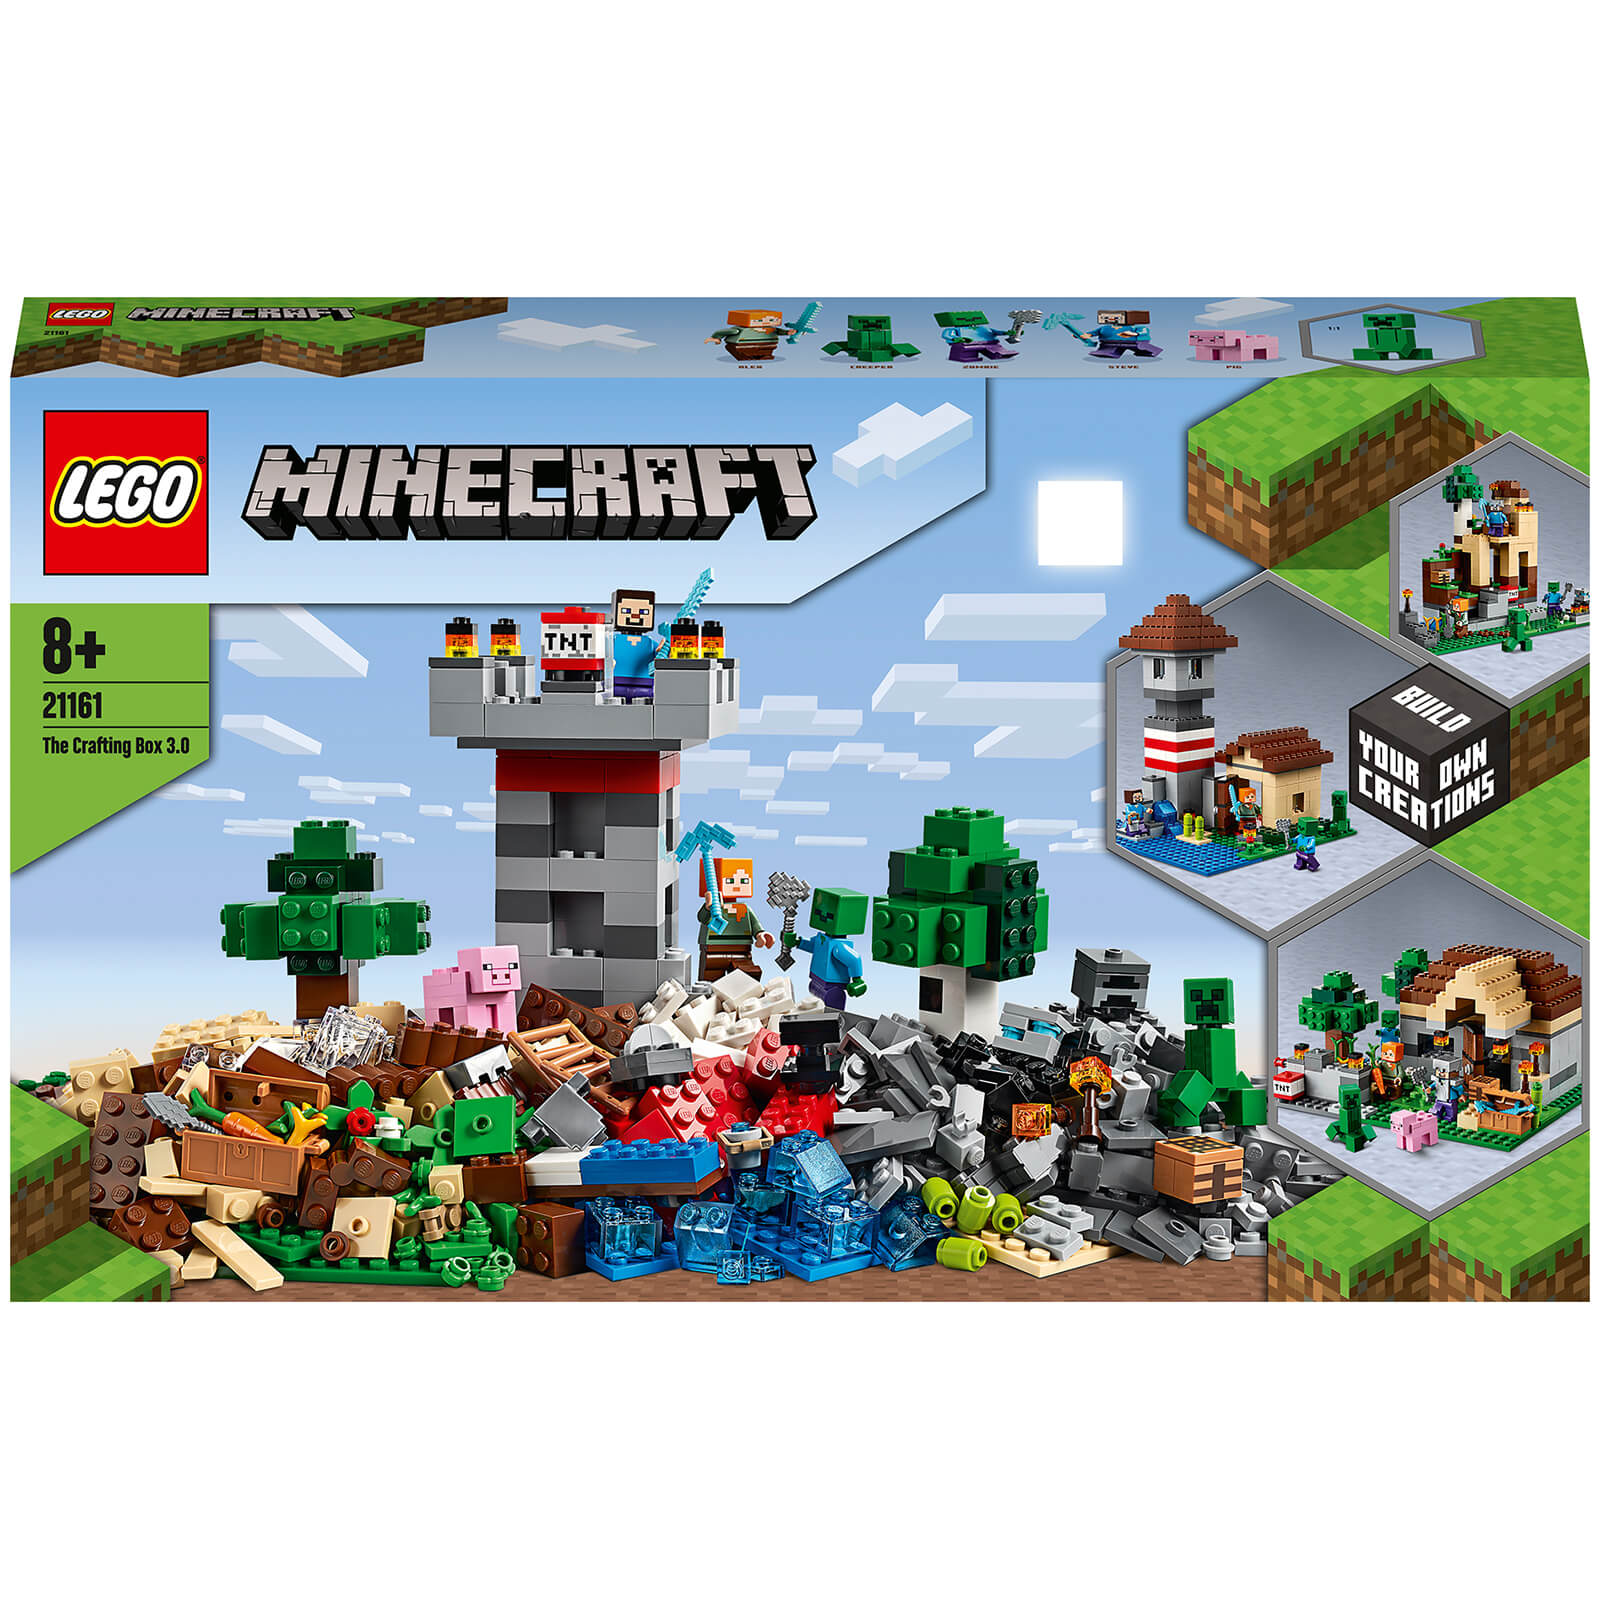 Image of 21161 LEGO® MINECRAFT The Crafting-Box 3.0